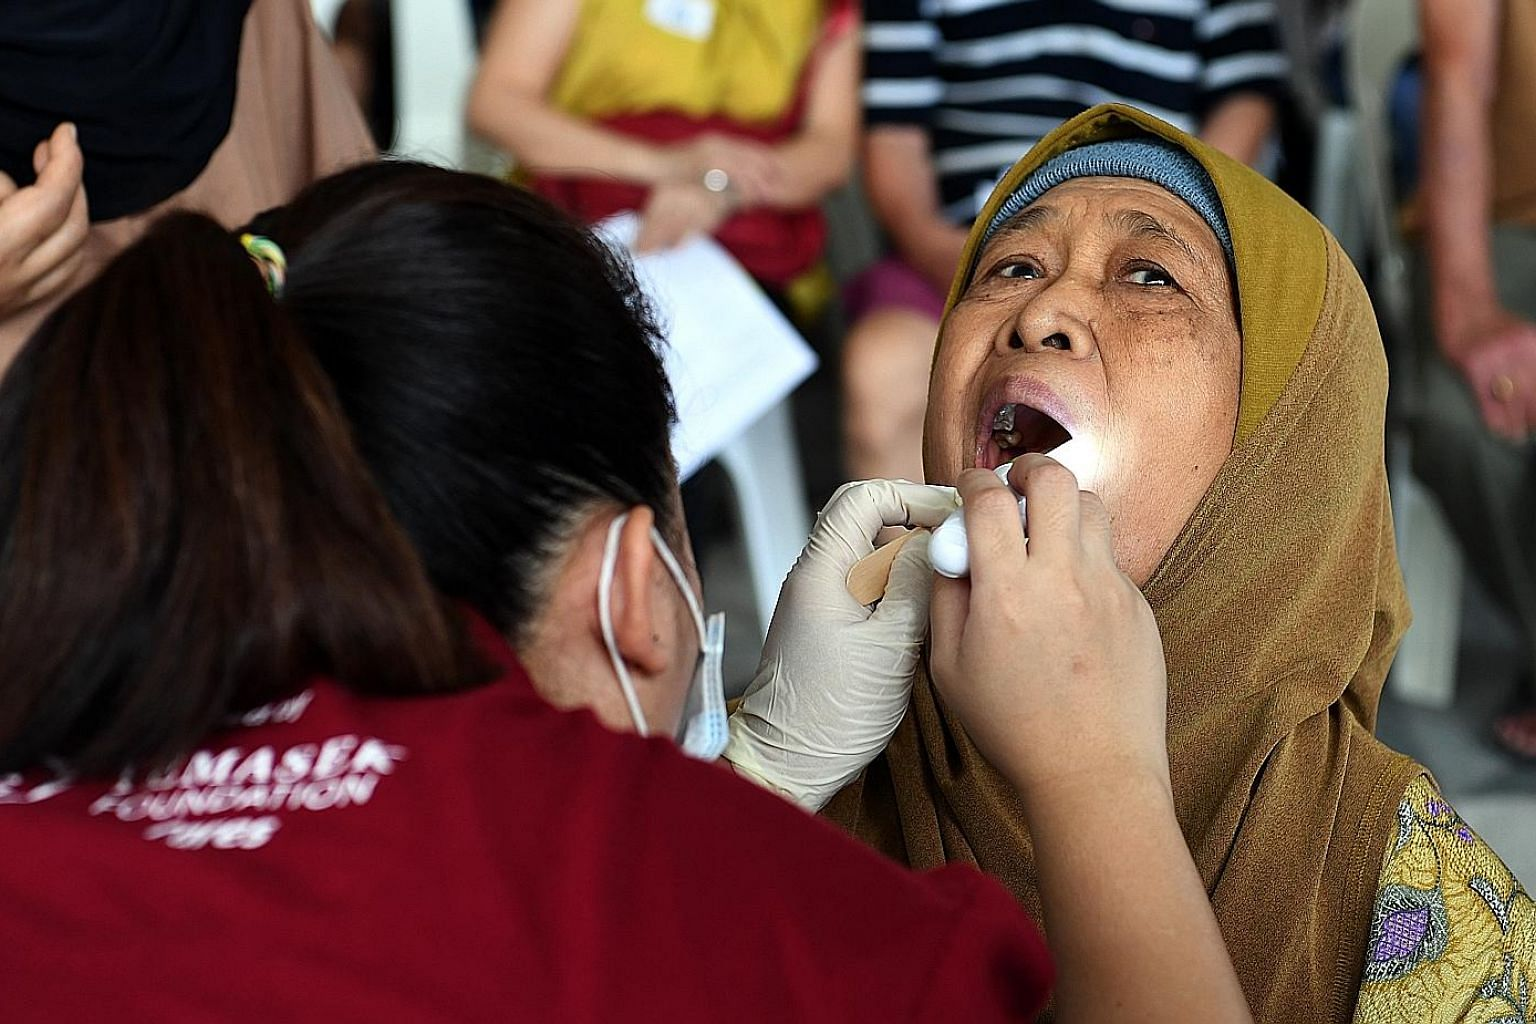 Madam Sudiah Sapii, 76, getting her teeth checked by a volunteer at a health screening yesterday at Kampung Admiralty, where Project Silver Screen was launched. Around 200 people from the neighbourhood took the chance to have their vision, hearing an